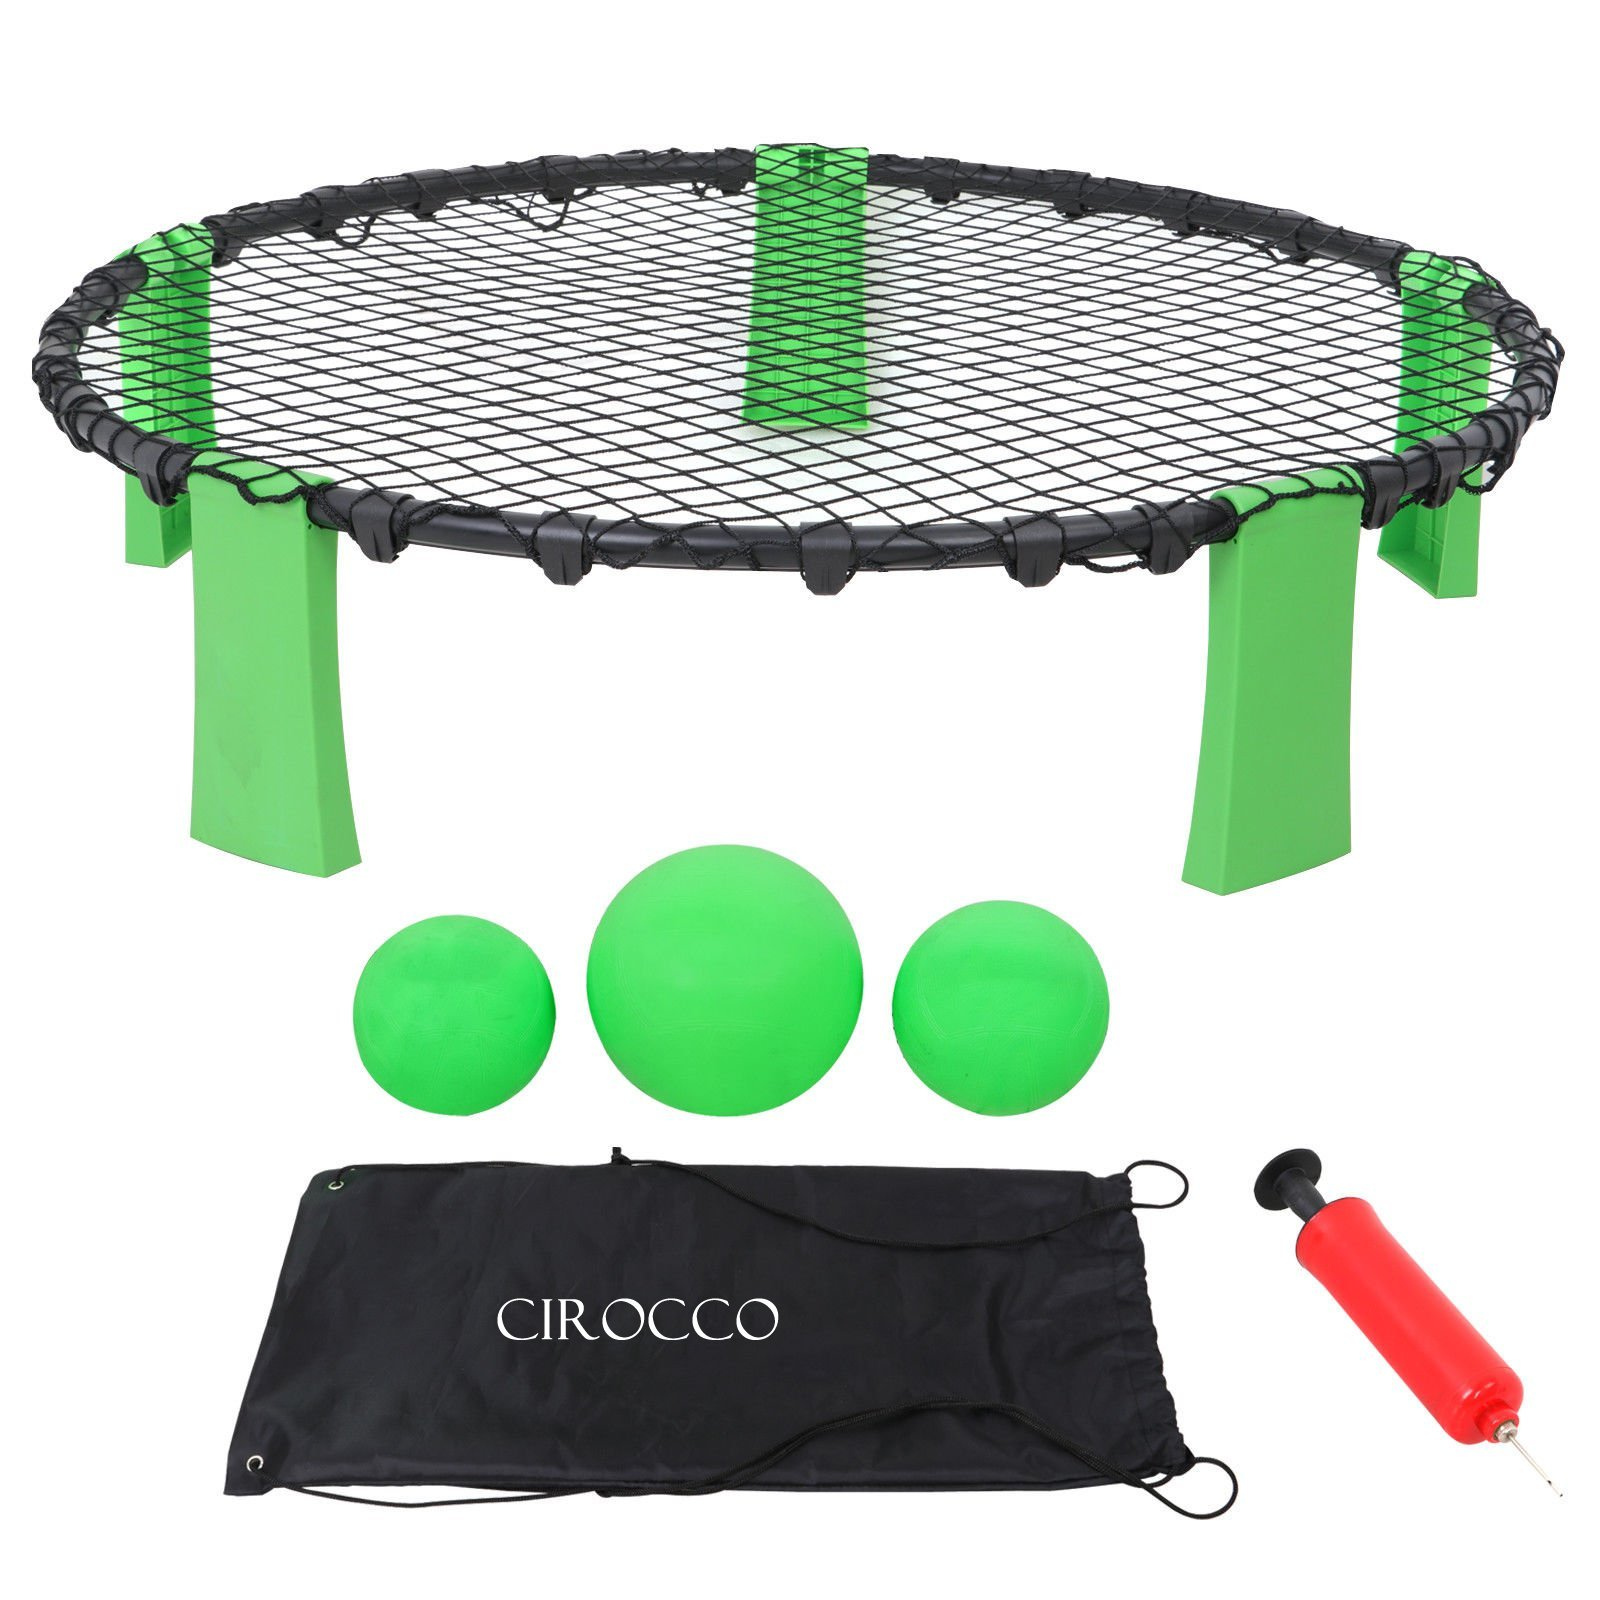 Cirocco Slam Ball Sports Game Set - Volleyball Toss Game Set - Ball Spike Battle Game | Outdoor Indoor Gift for Adult Teen Family Friend | Ideal for Yard Lawn Beach Tailgate Garden Party | Super Fun by Cirocco